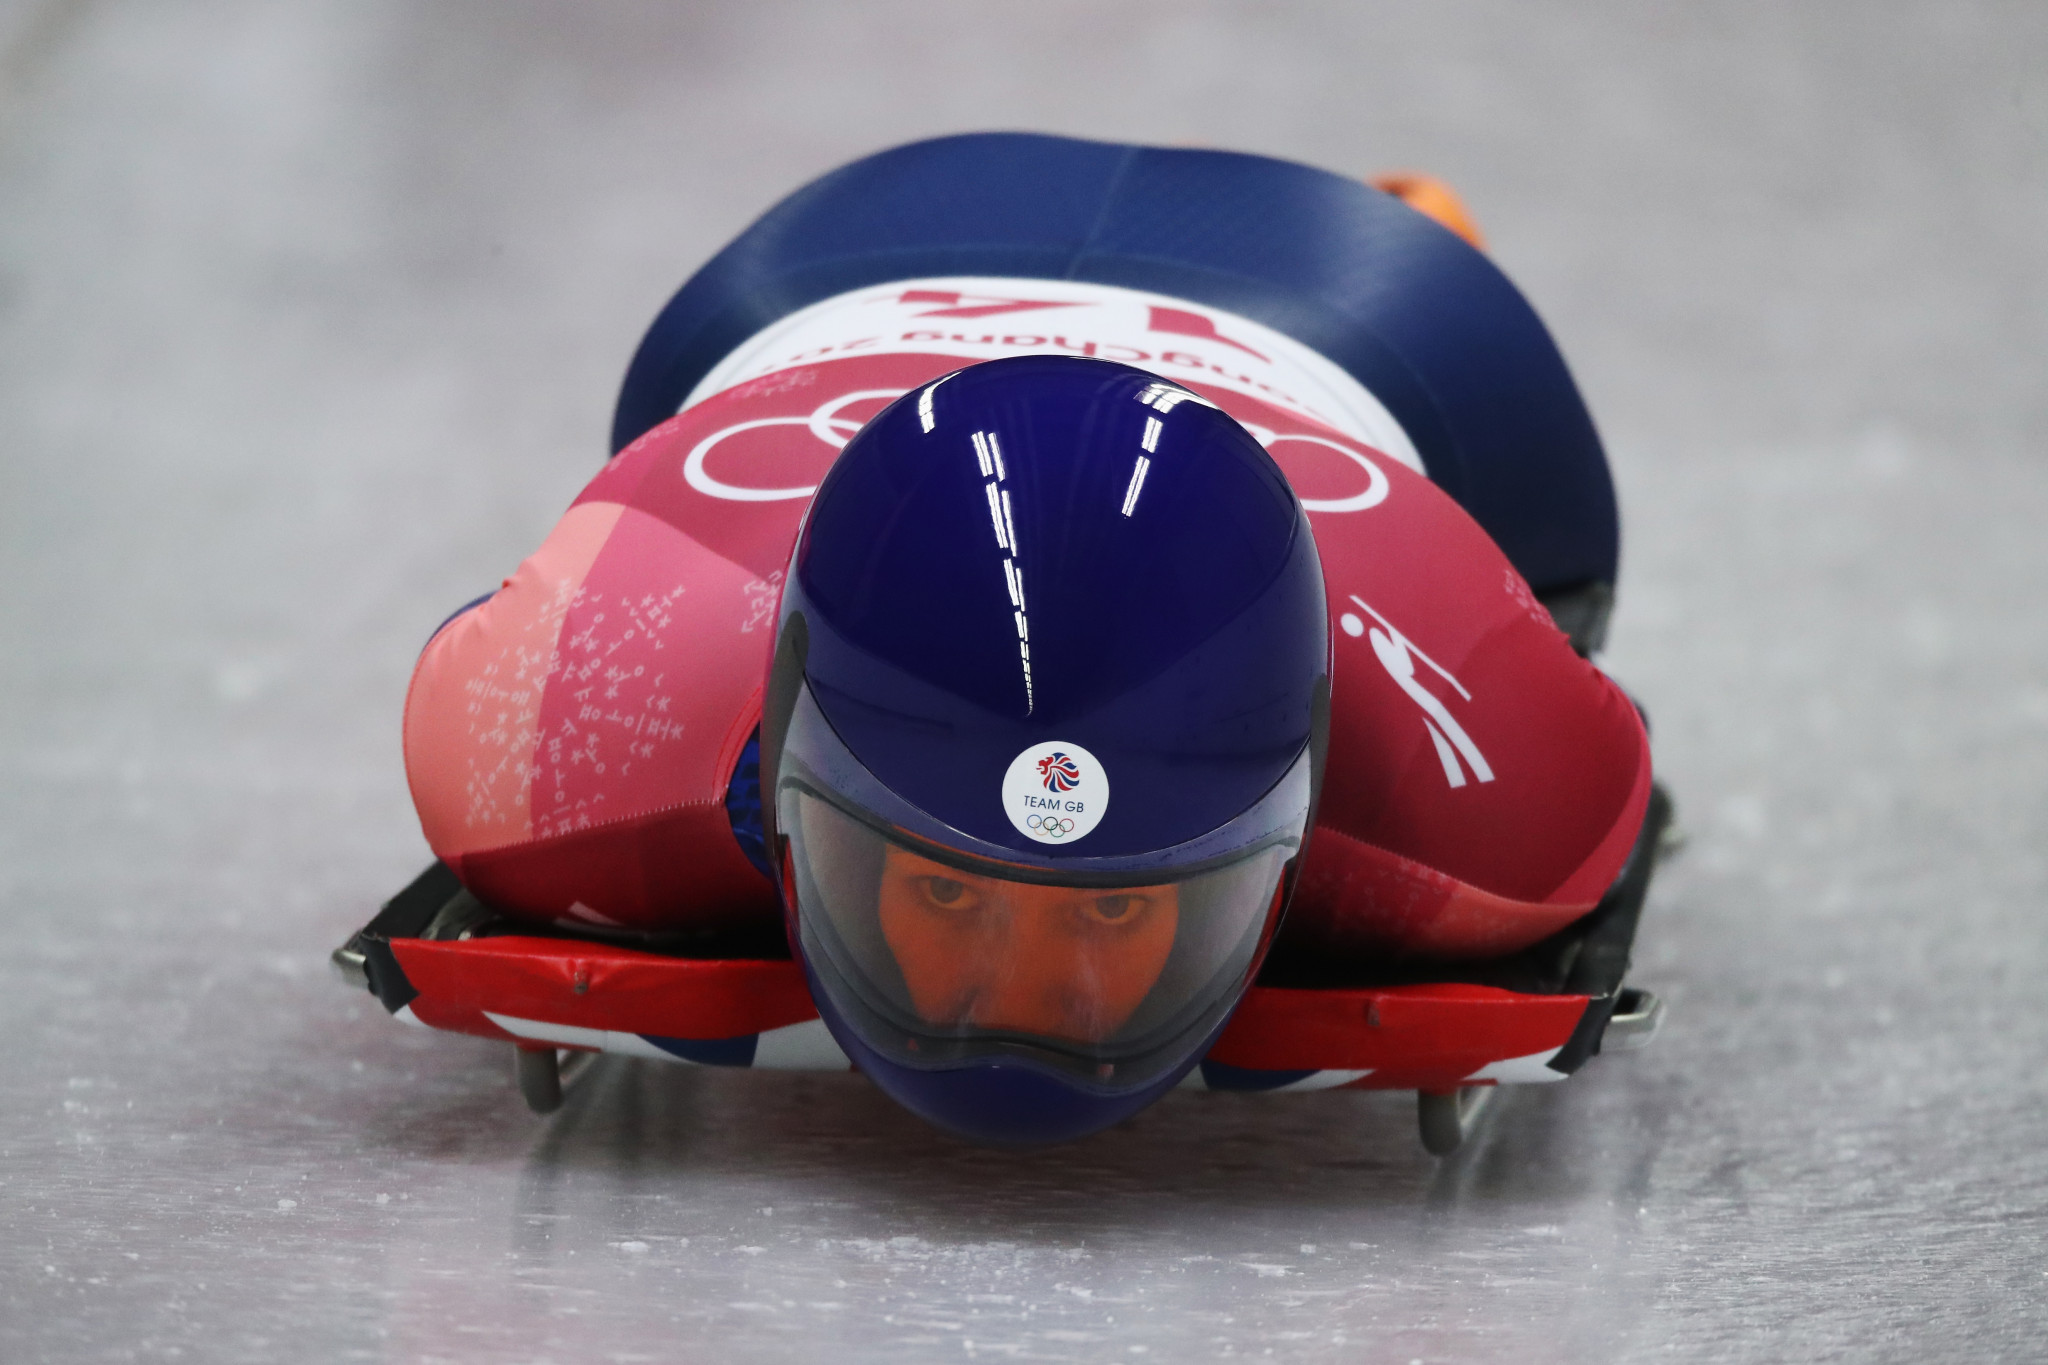 Lizzy Yarnold's victory at the skeleton at Pyeongchang 2018 means Britain's women have won the last three consecutive Olympic gold medals in the event ©Getty Images